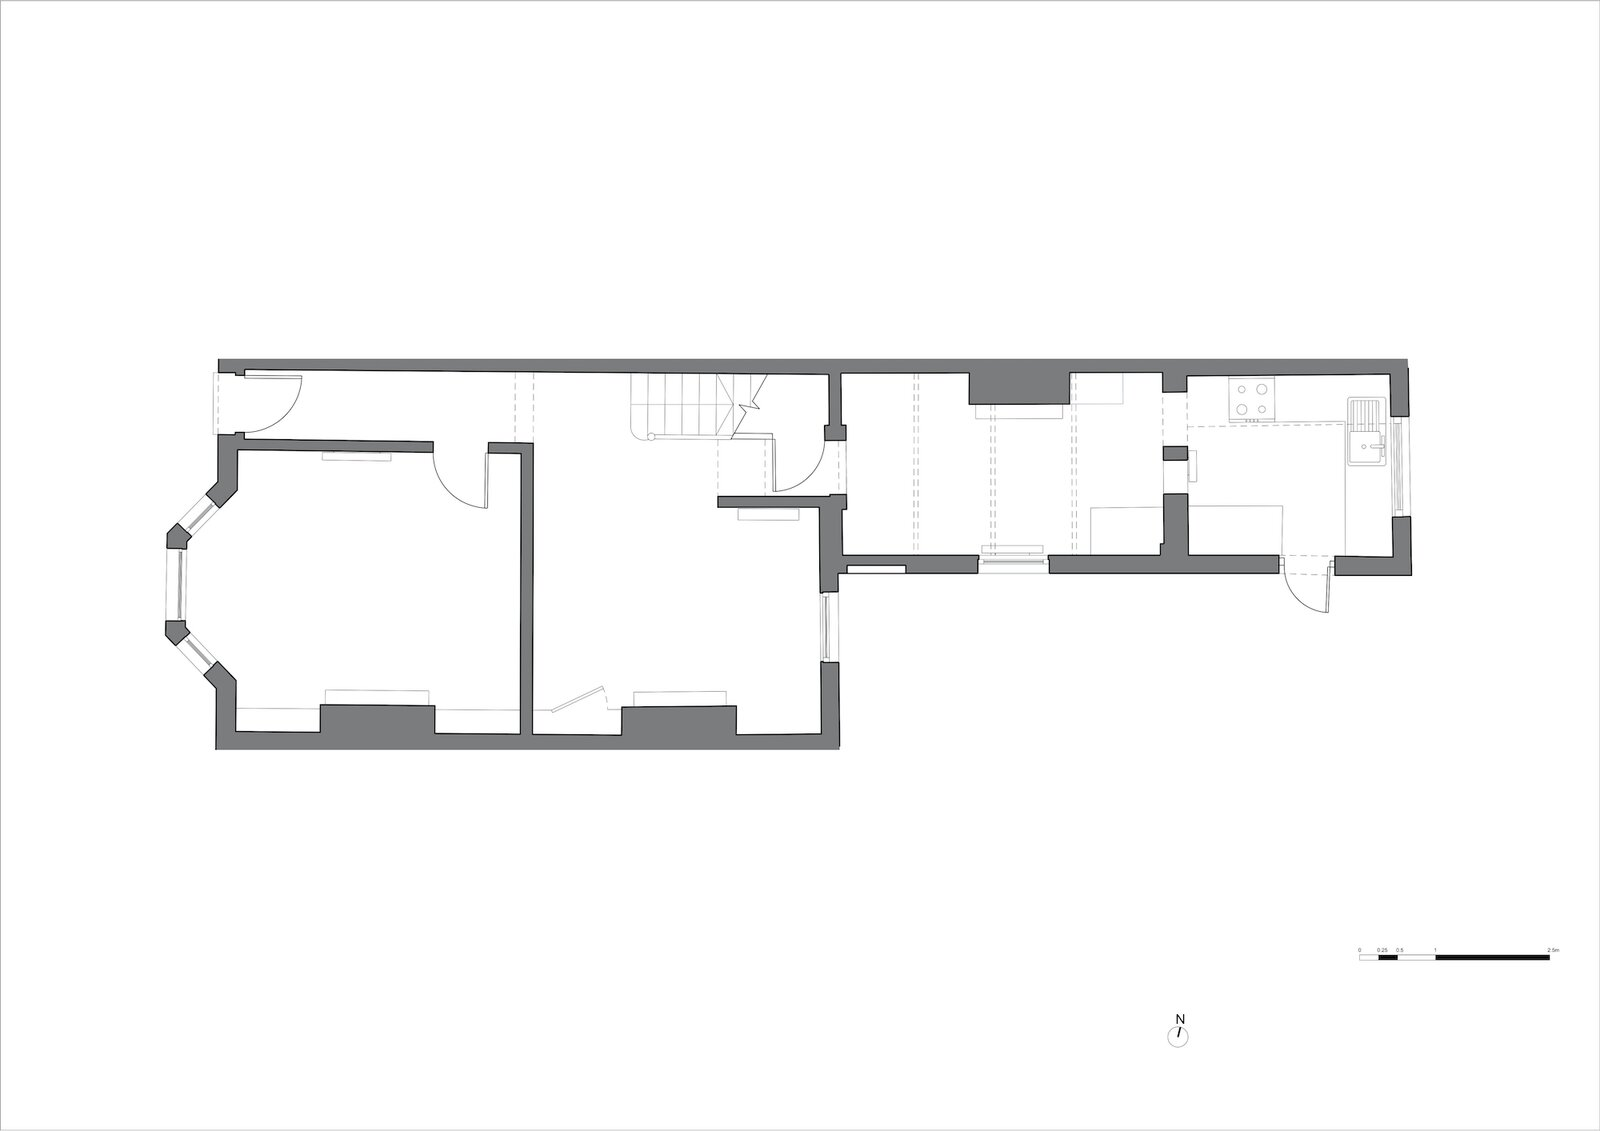 Ground floor plan of Zigzag Roof House by 4 S Architecture before the extension.